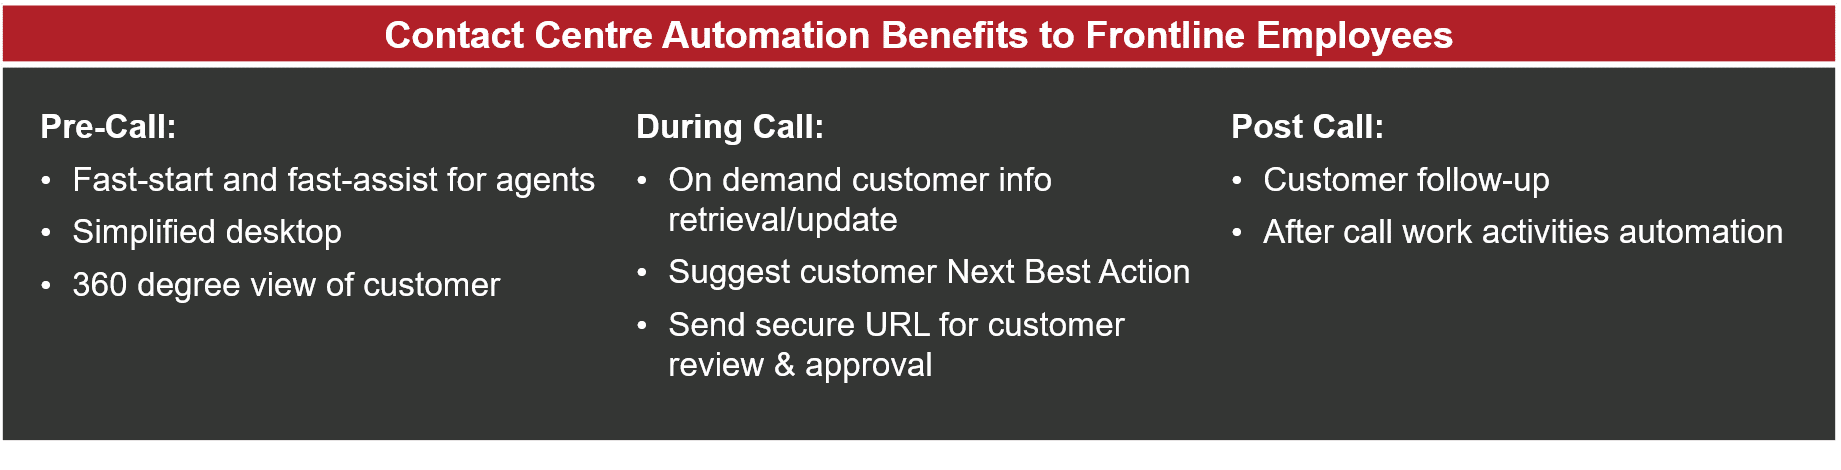 Contact Centre Automation Benefits to Frontline Employees - table heading